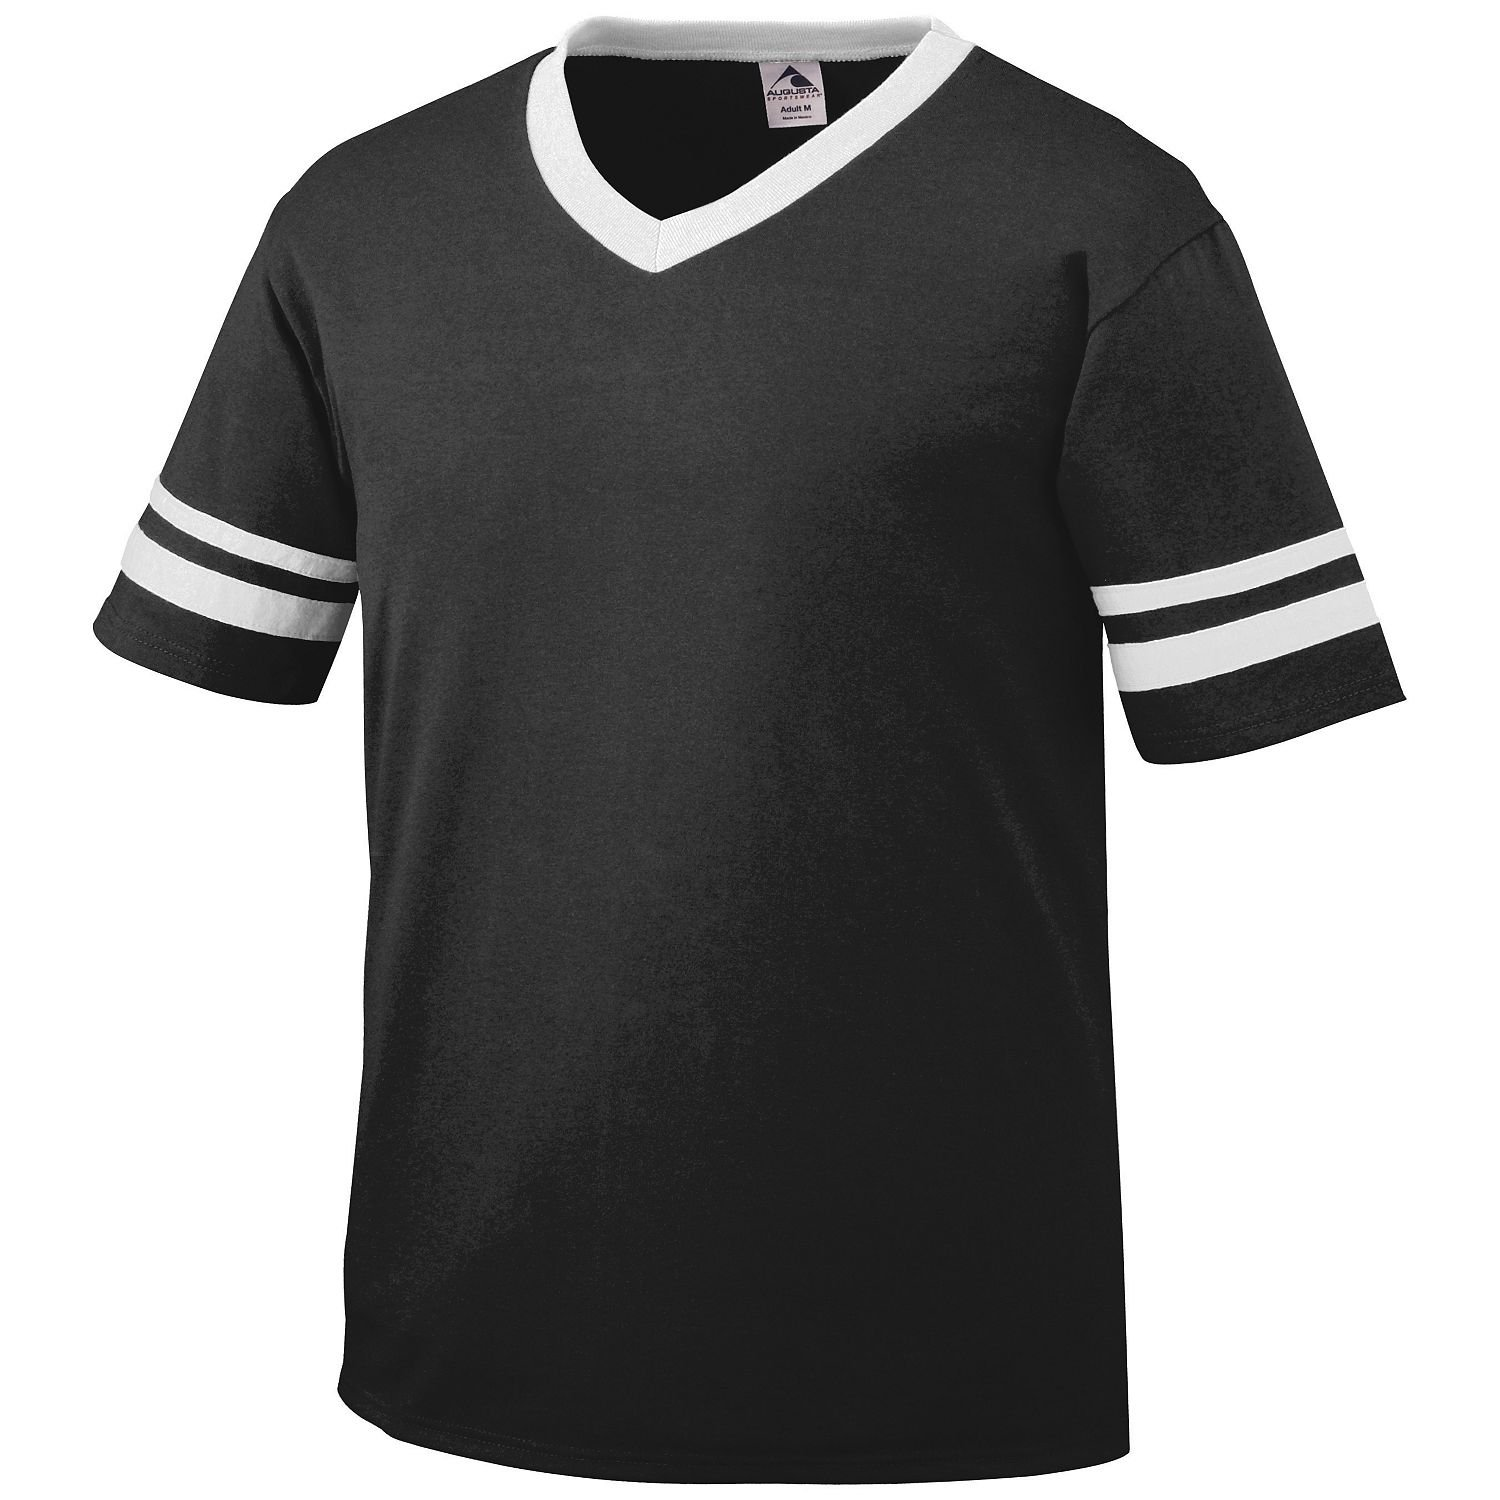 Augusta Sportswear Sleeve stripe jersey - youth supplier